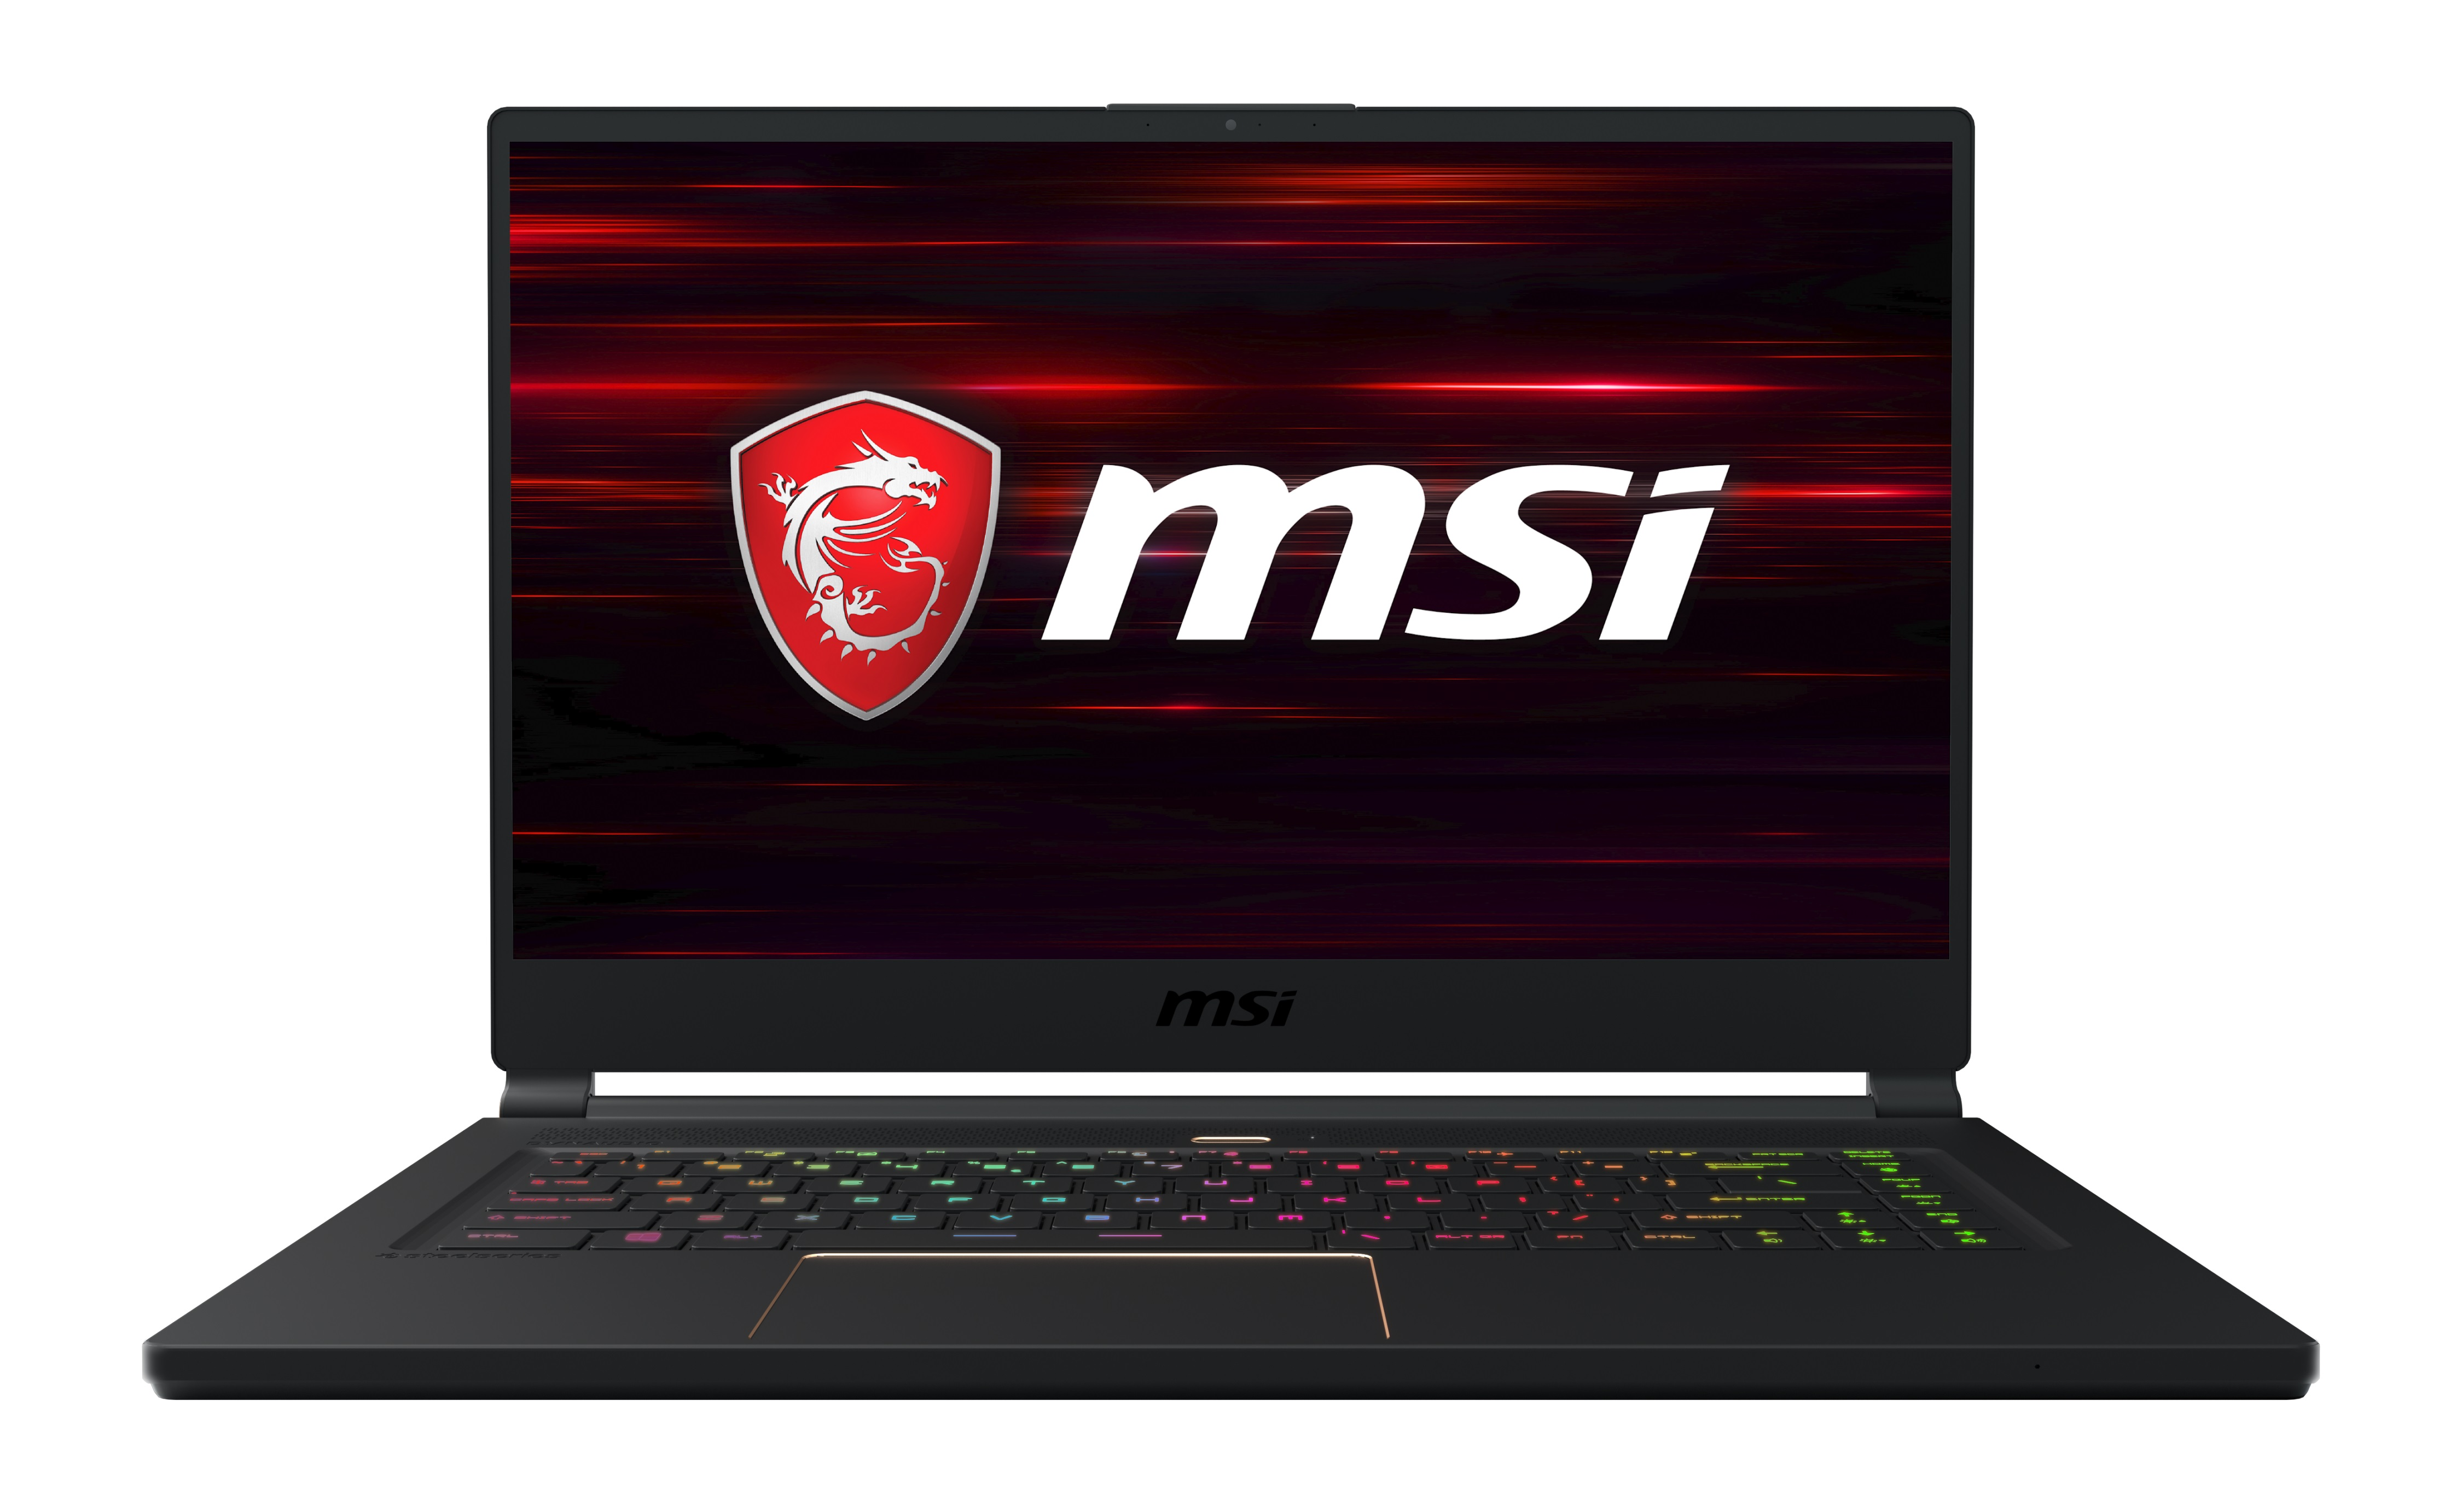 MSI GS65 STEALTH THIN 8RE/I7 8750/1060 6G/16G